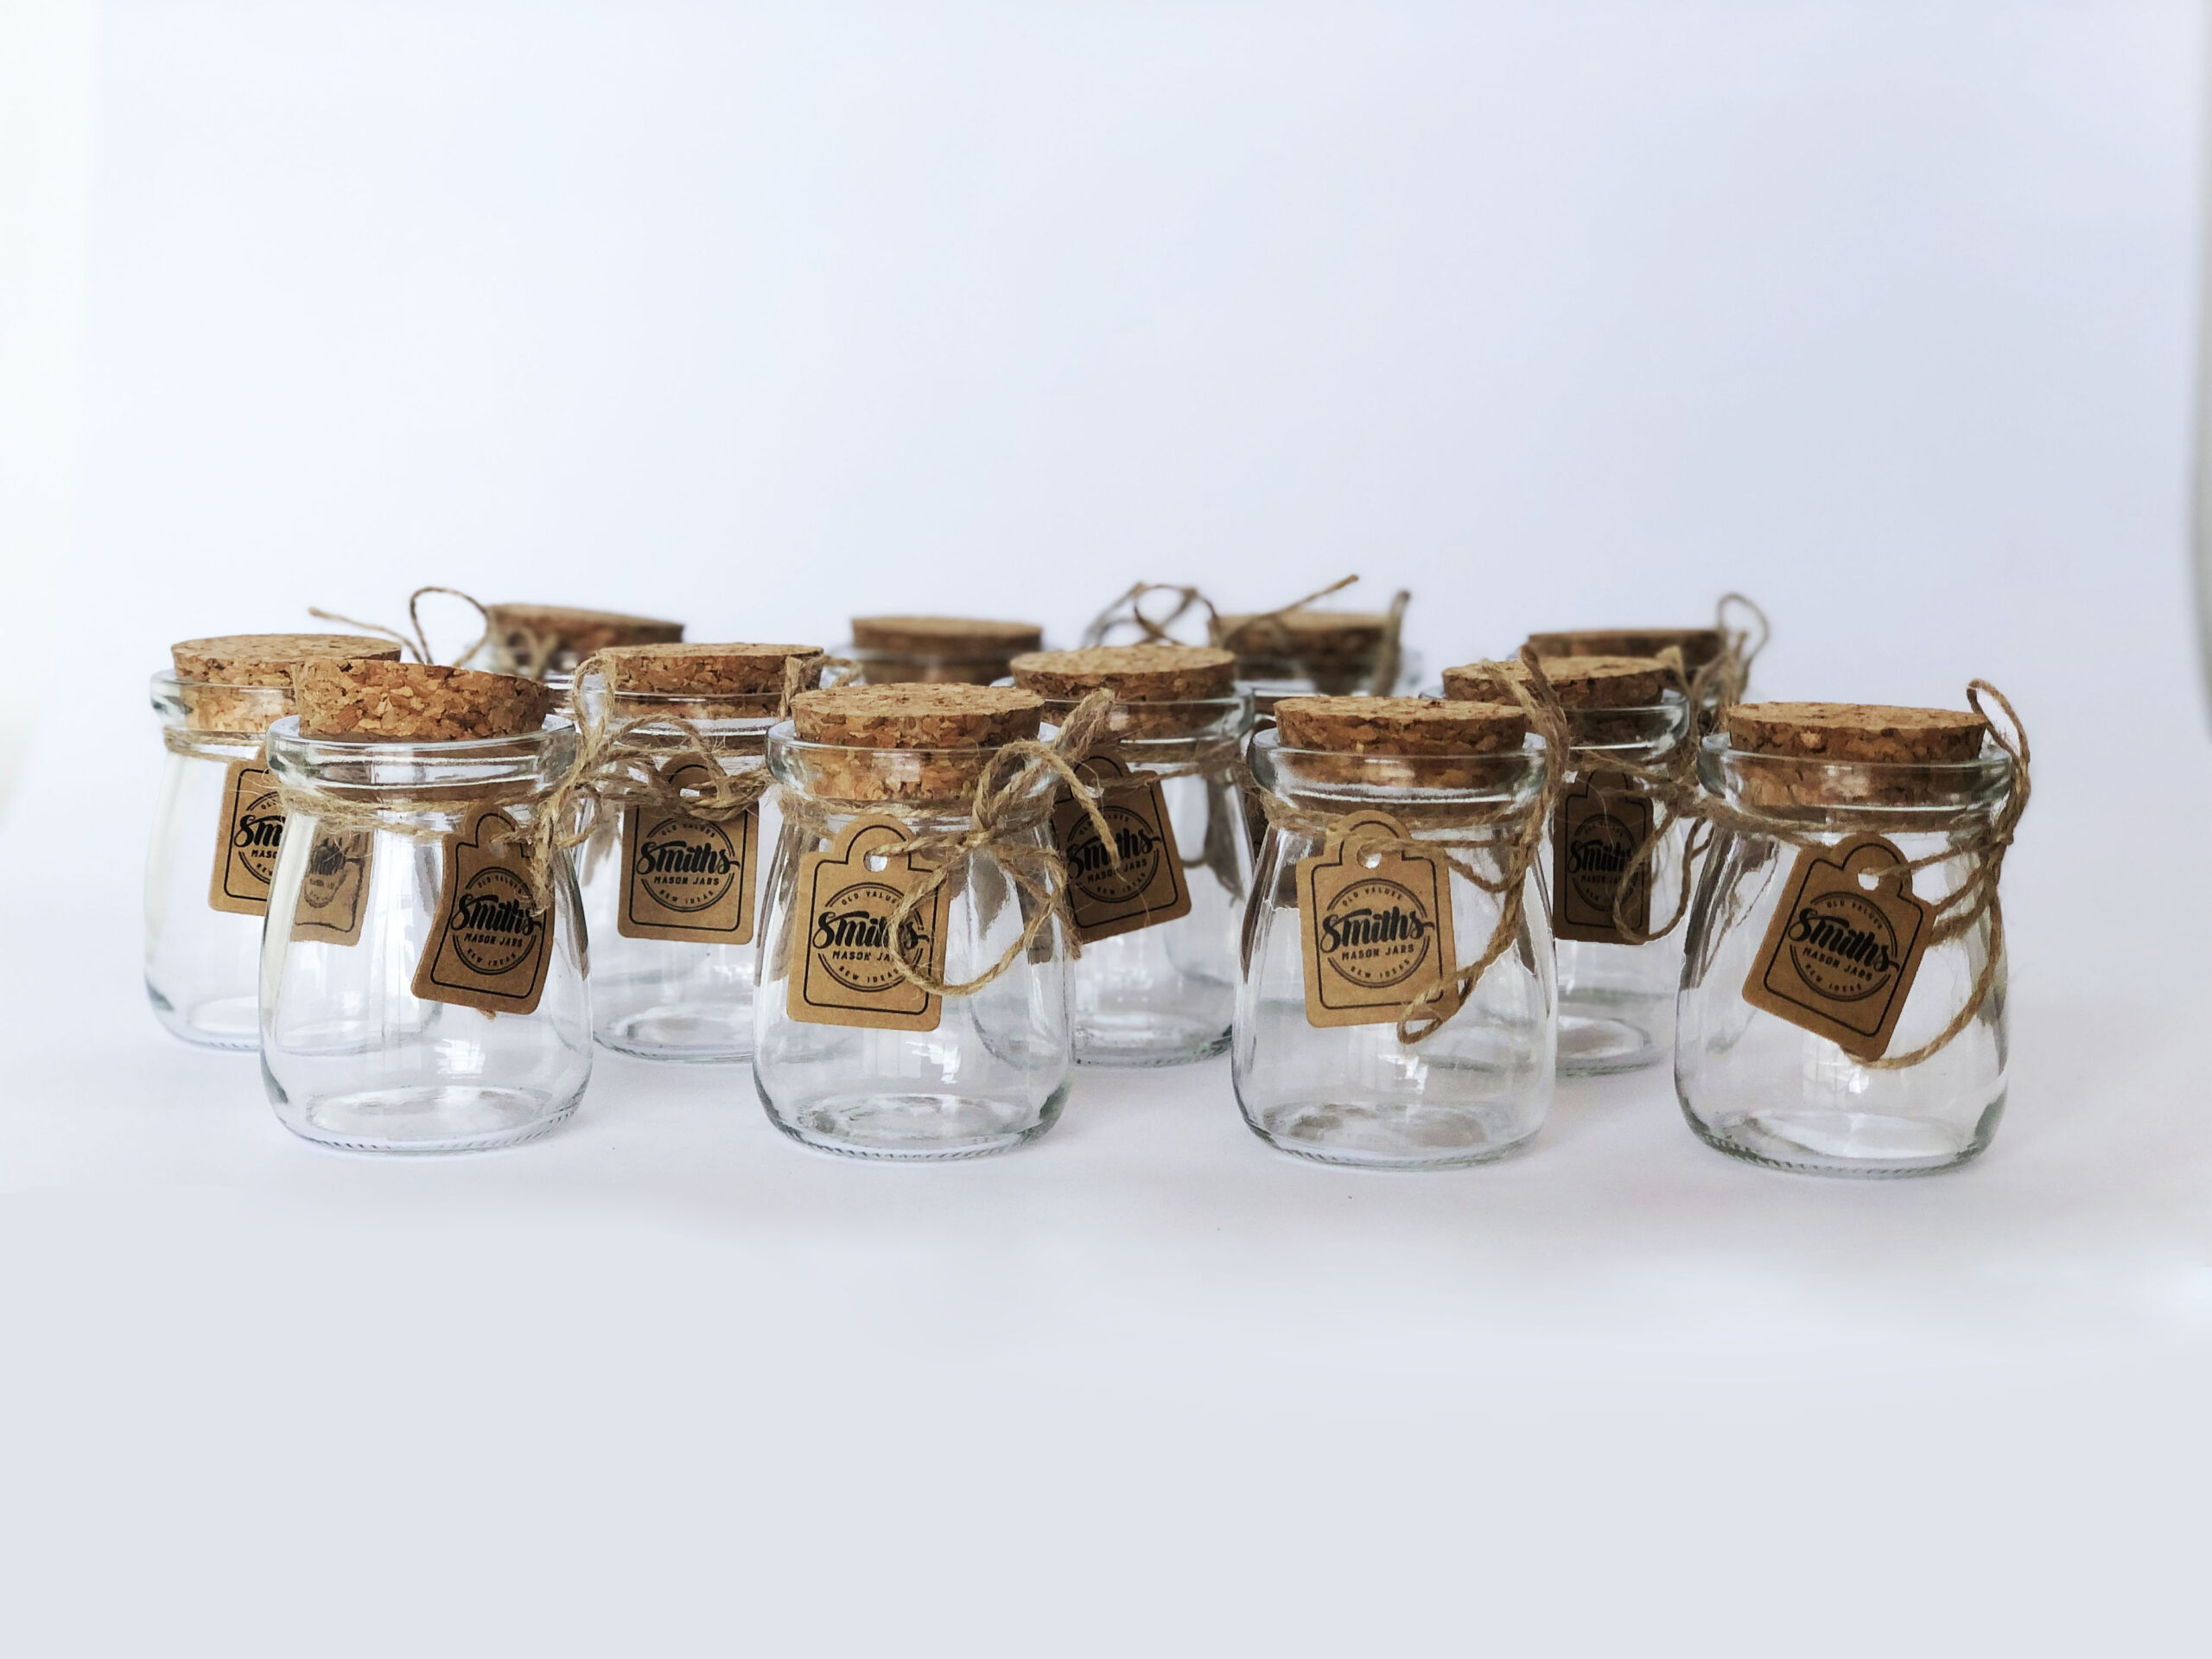 Set of 12 – Smith's Mason Jars 100mL Short Pudding Bowl with Cork Lids – Great for Food Storage, Arts and Crafts, Candles, Giveaways, Tealight Candle Holders, Spices, Nuts, and More